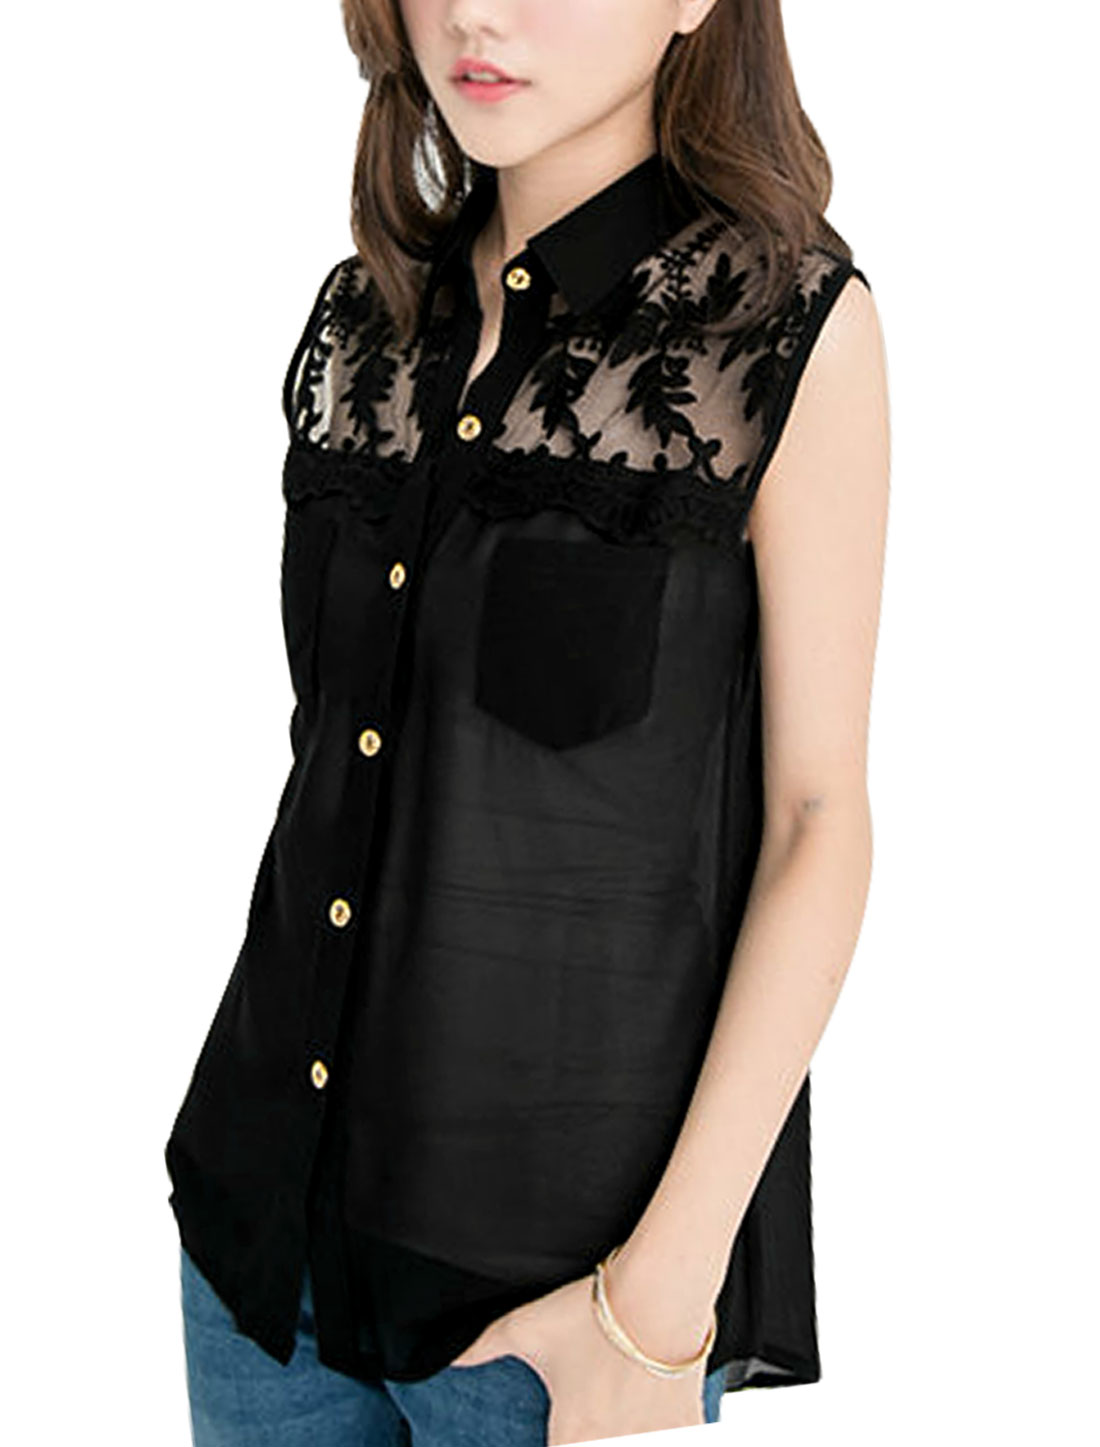 Women Point Collar Mesh Patching Sheerness Sweet Chiffon Top Shirt Black XS